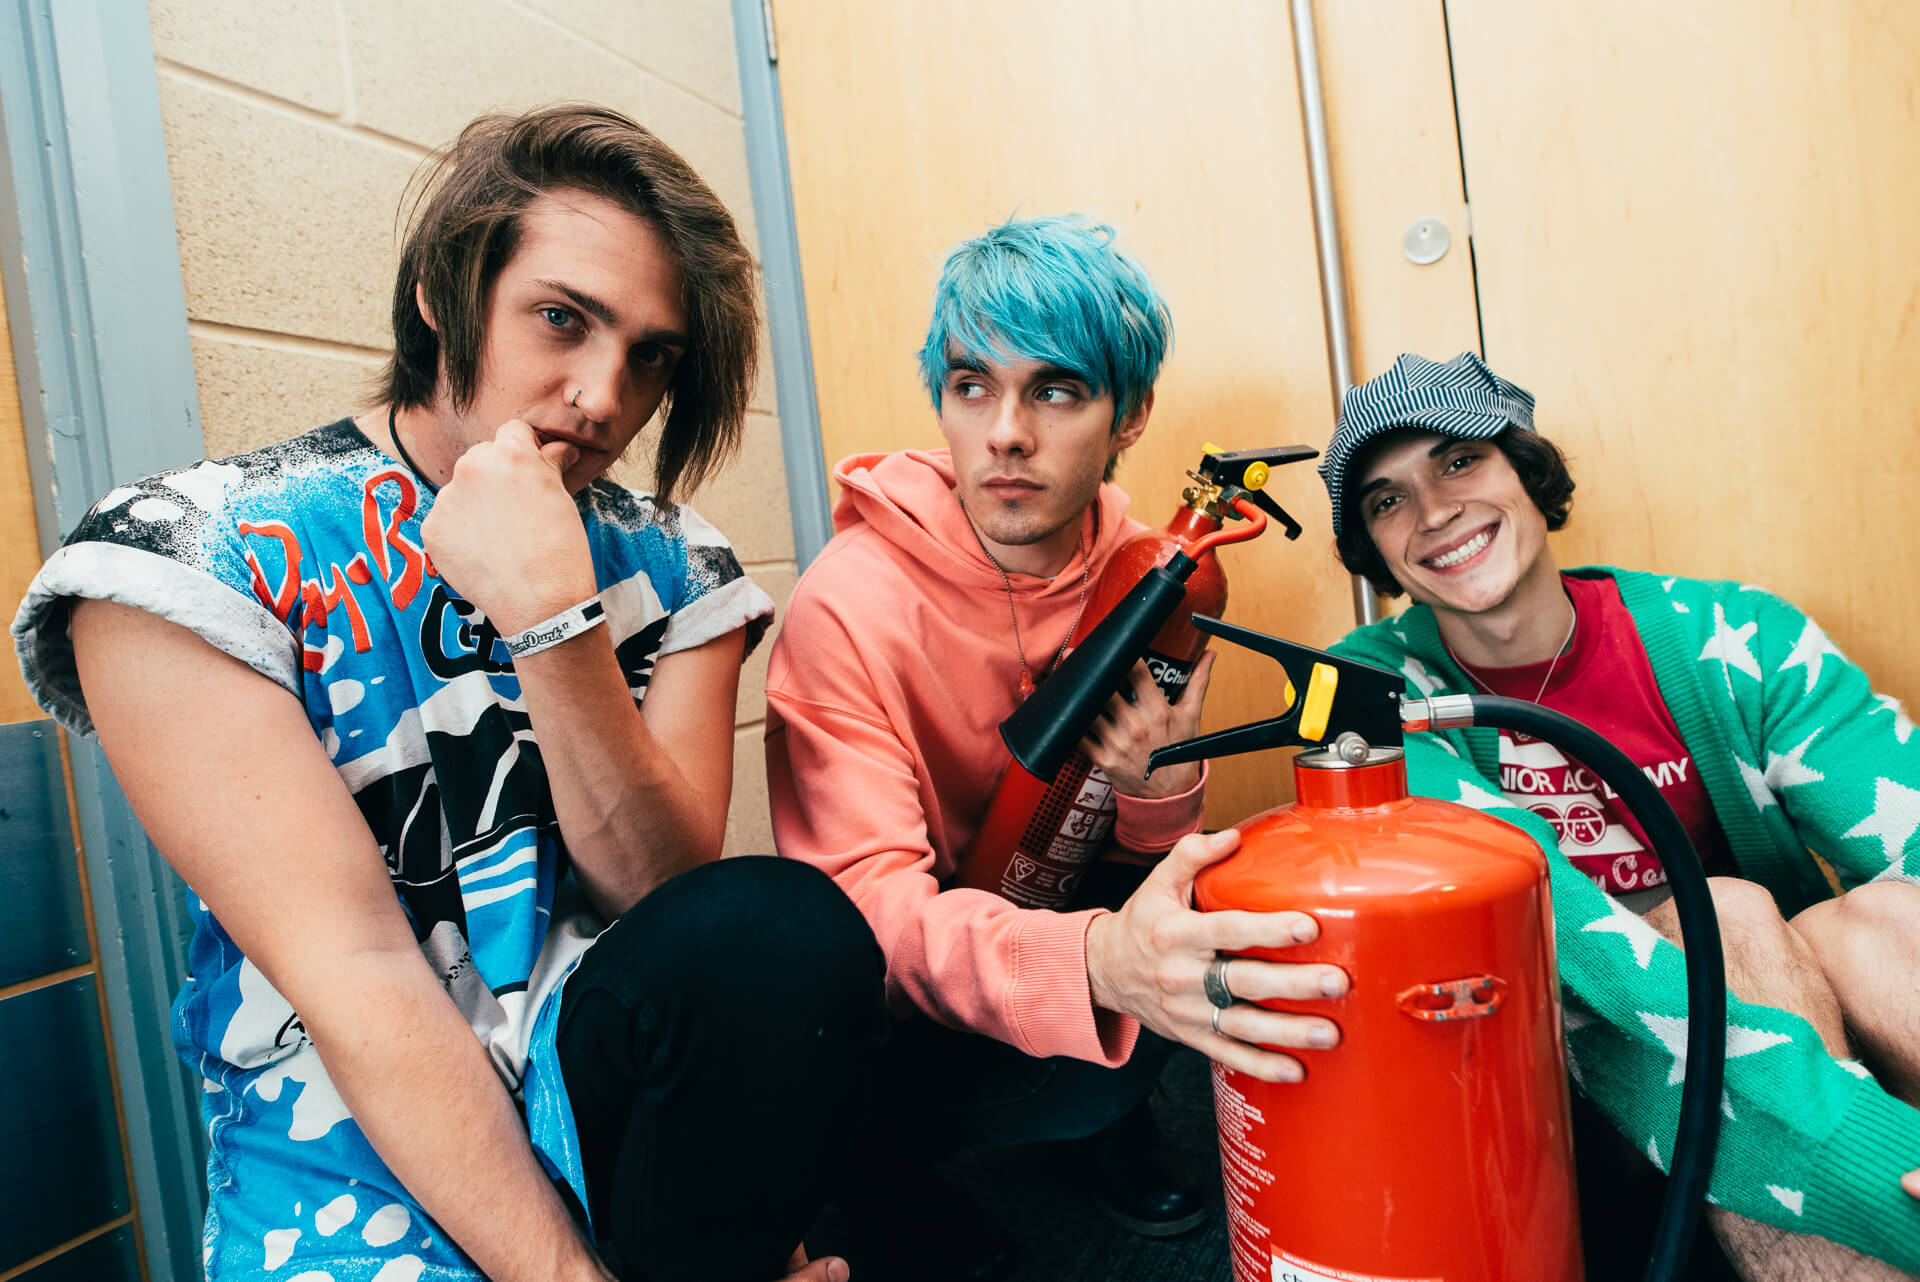 Waterparks-Slam_Dunk-ryanjohnstonco-7